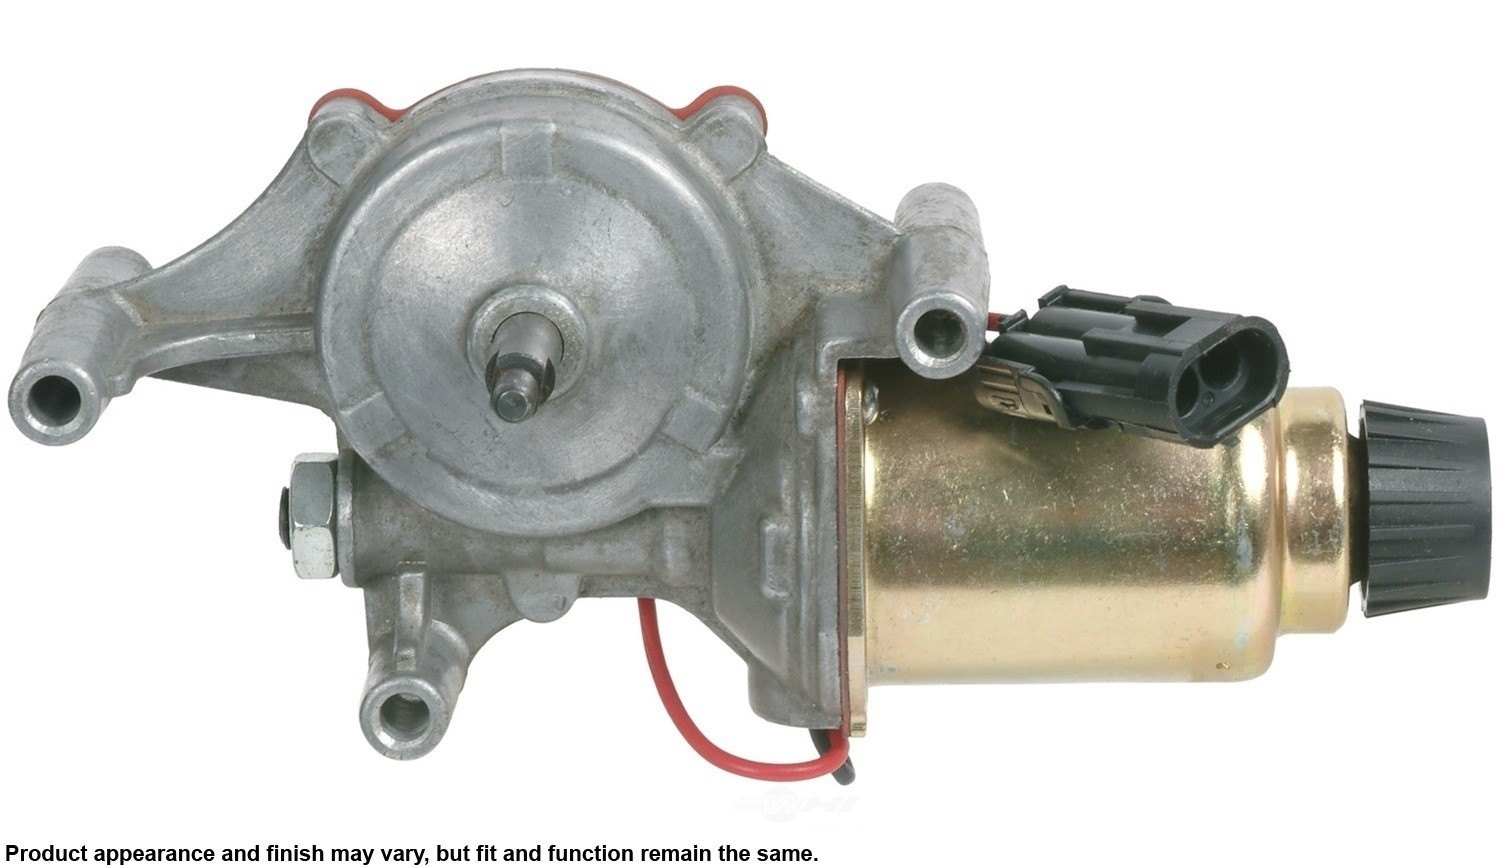 CARDONE NEW - Headlight Motor - A1S 82-9101H